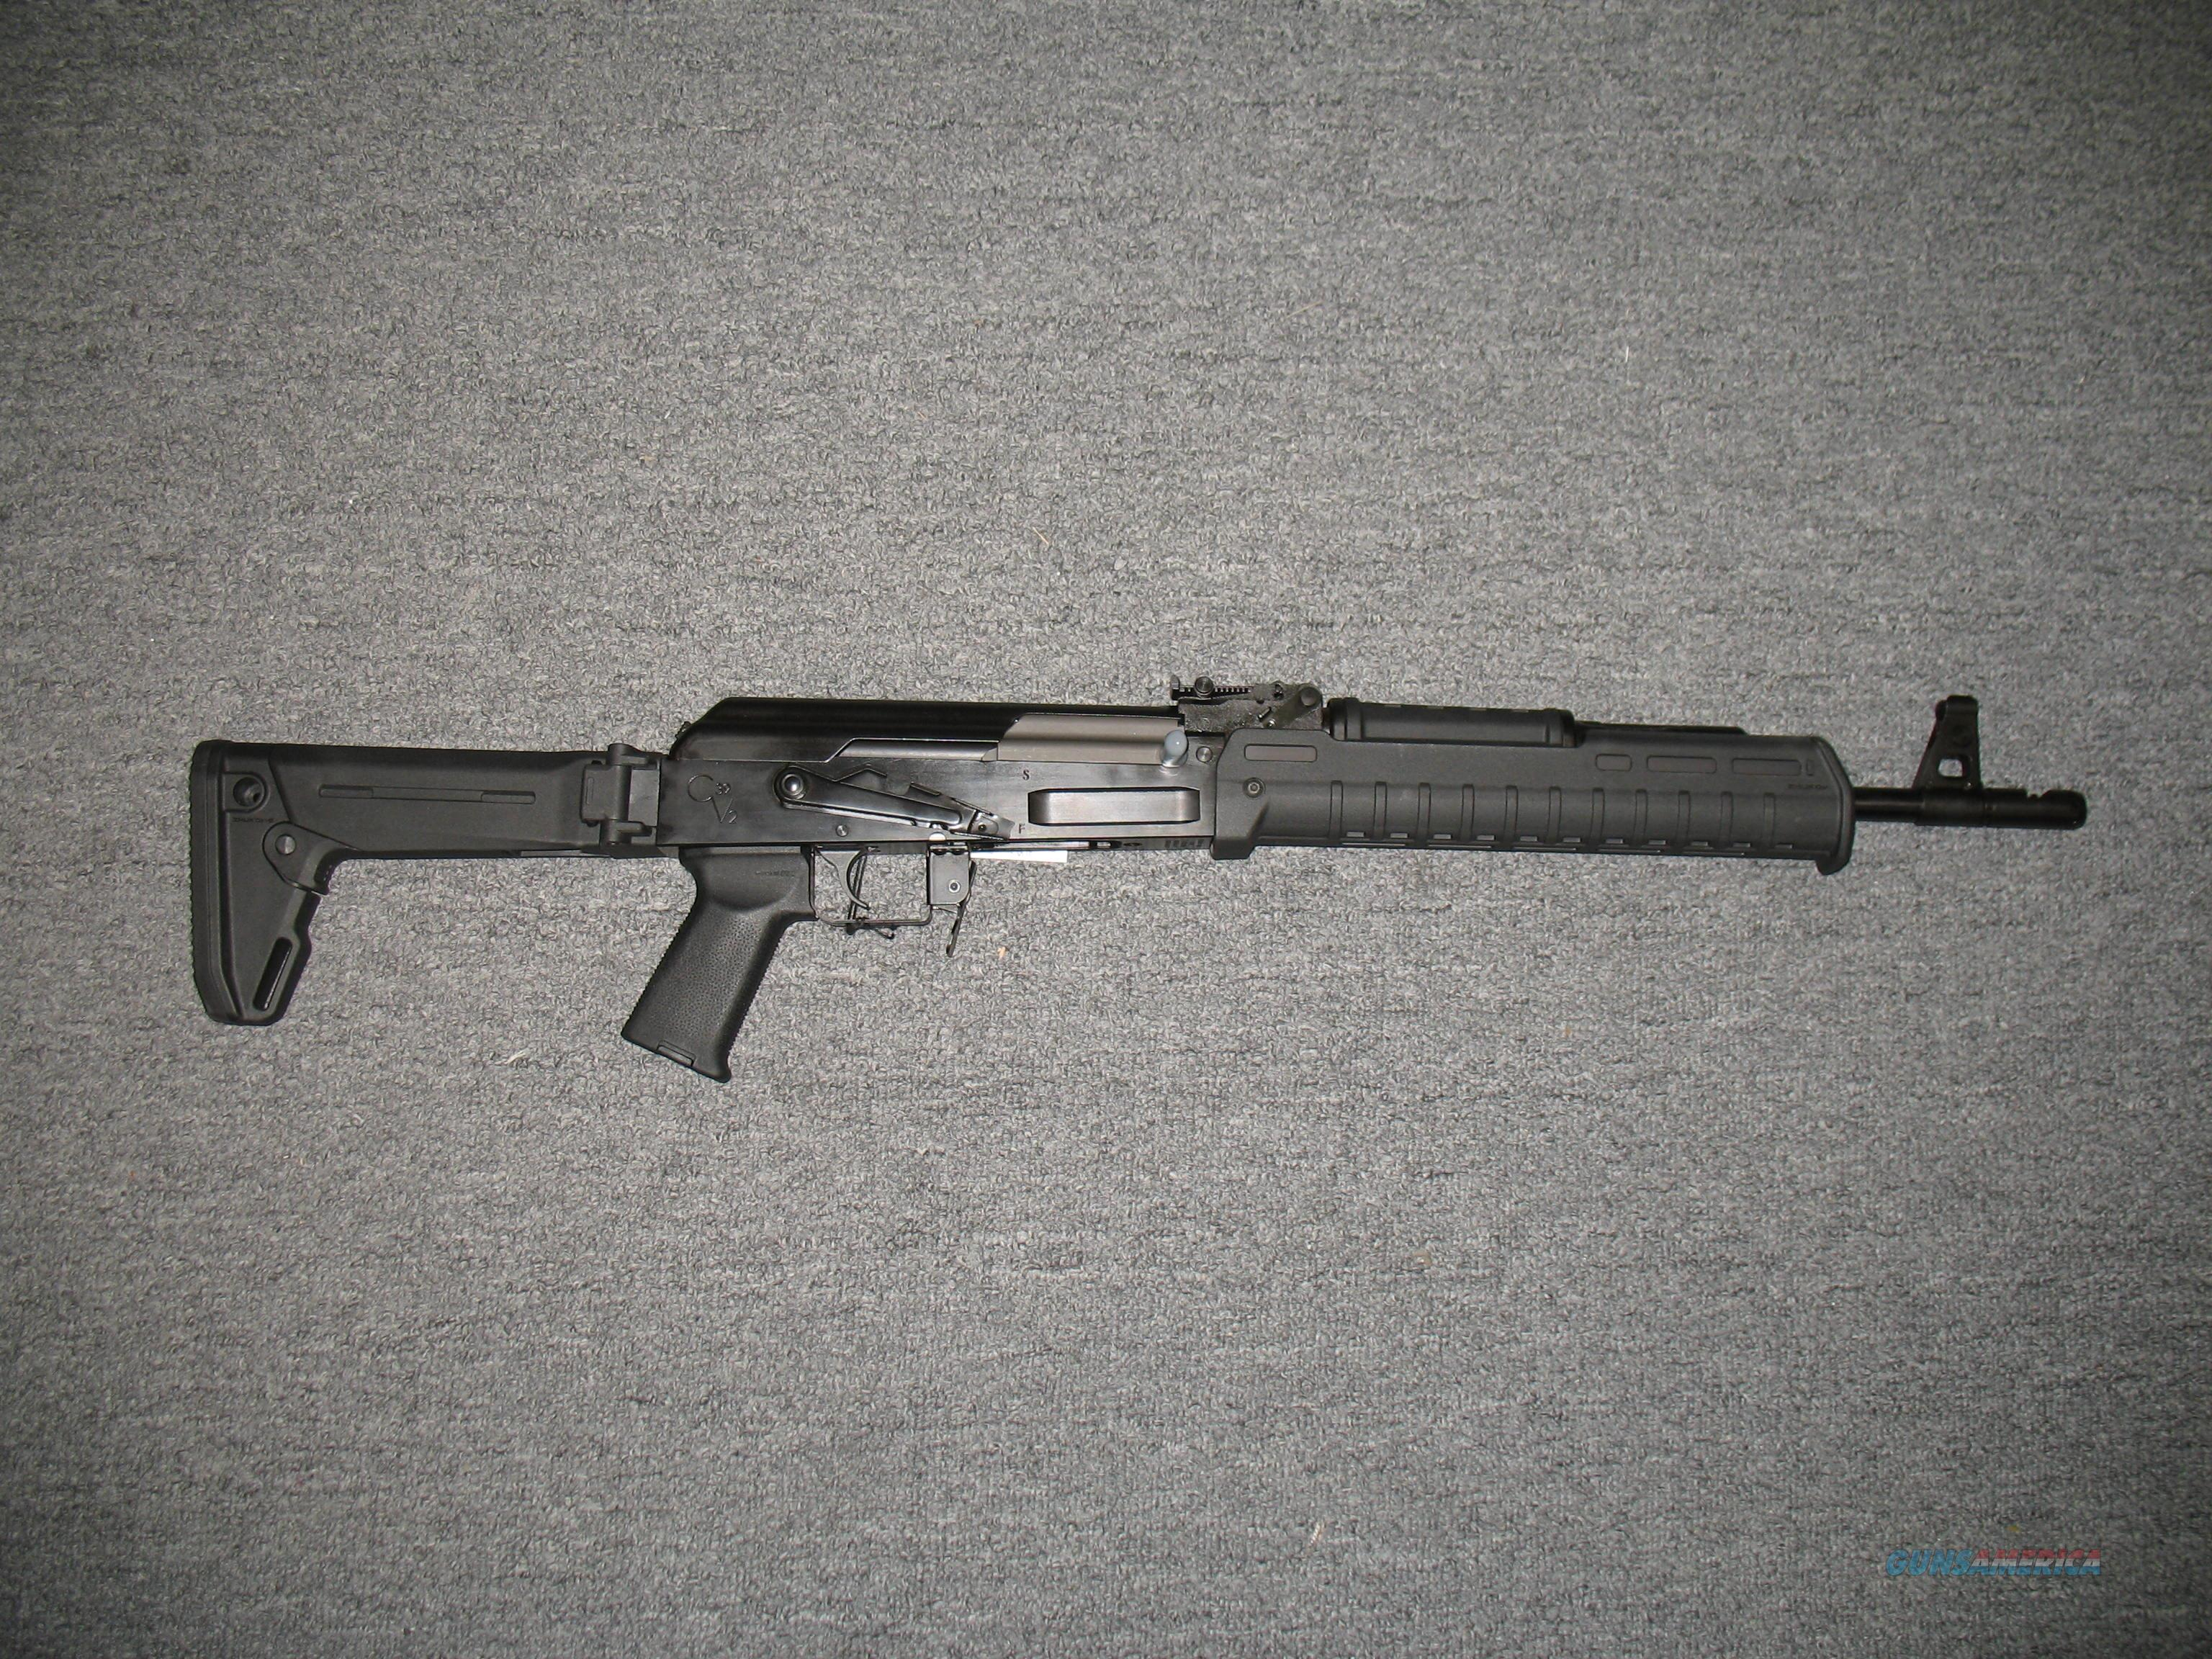 C39 V2 Rifle (Milled Receiver, with folding and adjustable Magpul stock  Guns > Rifles > Century International Arms - Rifles > Rifles